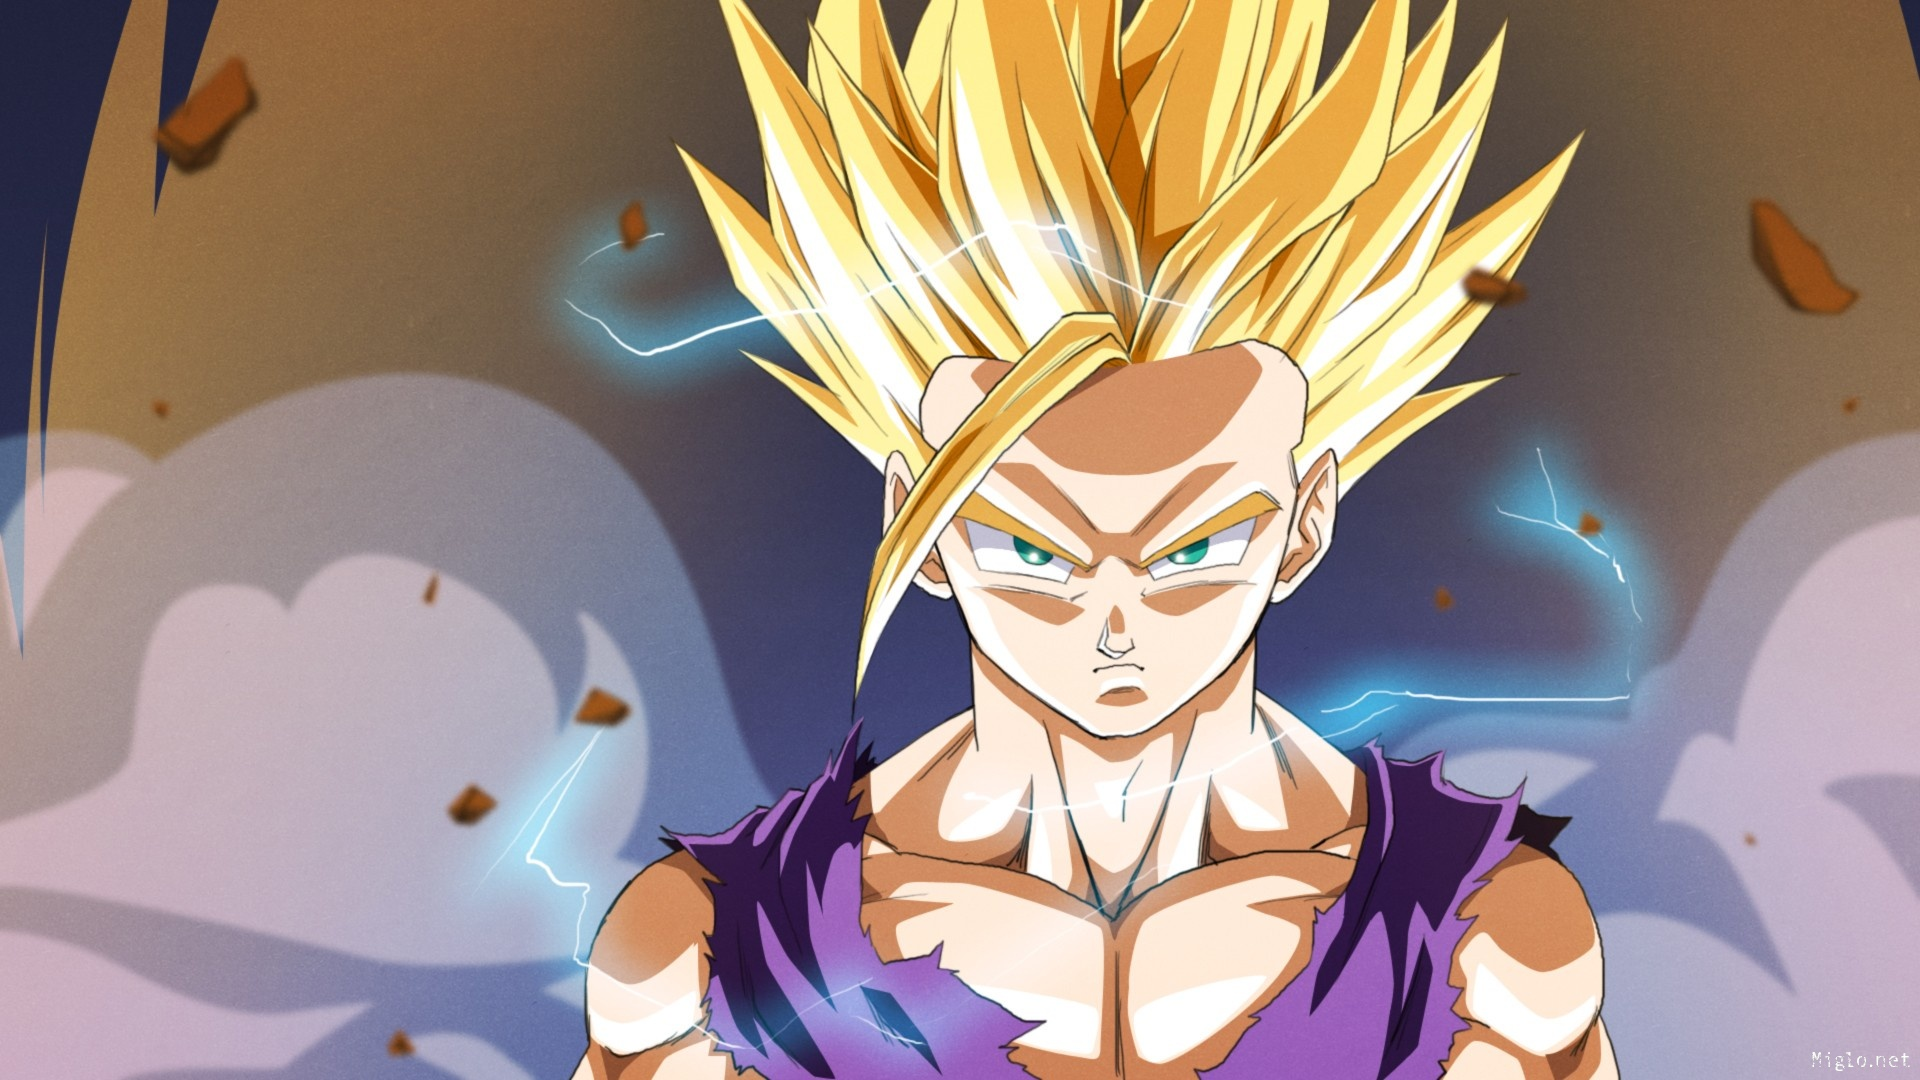 best-anime-dragon-ball-z-hd-jpeg-1920%C3%971080-wallpaper-wp3603308